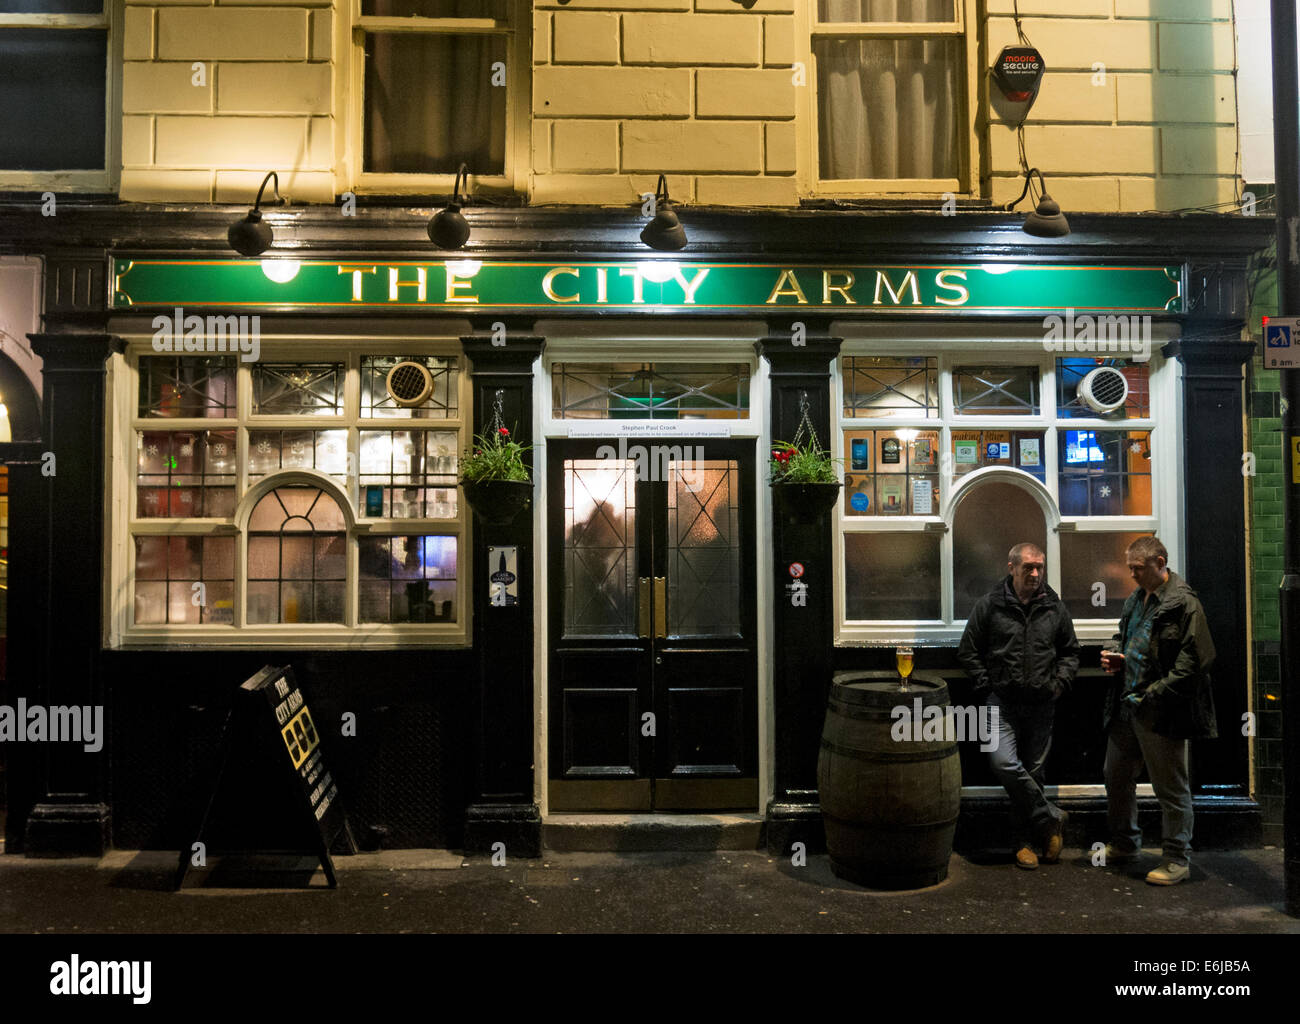 The City Arms Pub, Manchester, NW England, United Kingdom in the early evening - Stock Image